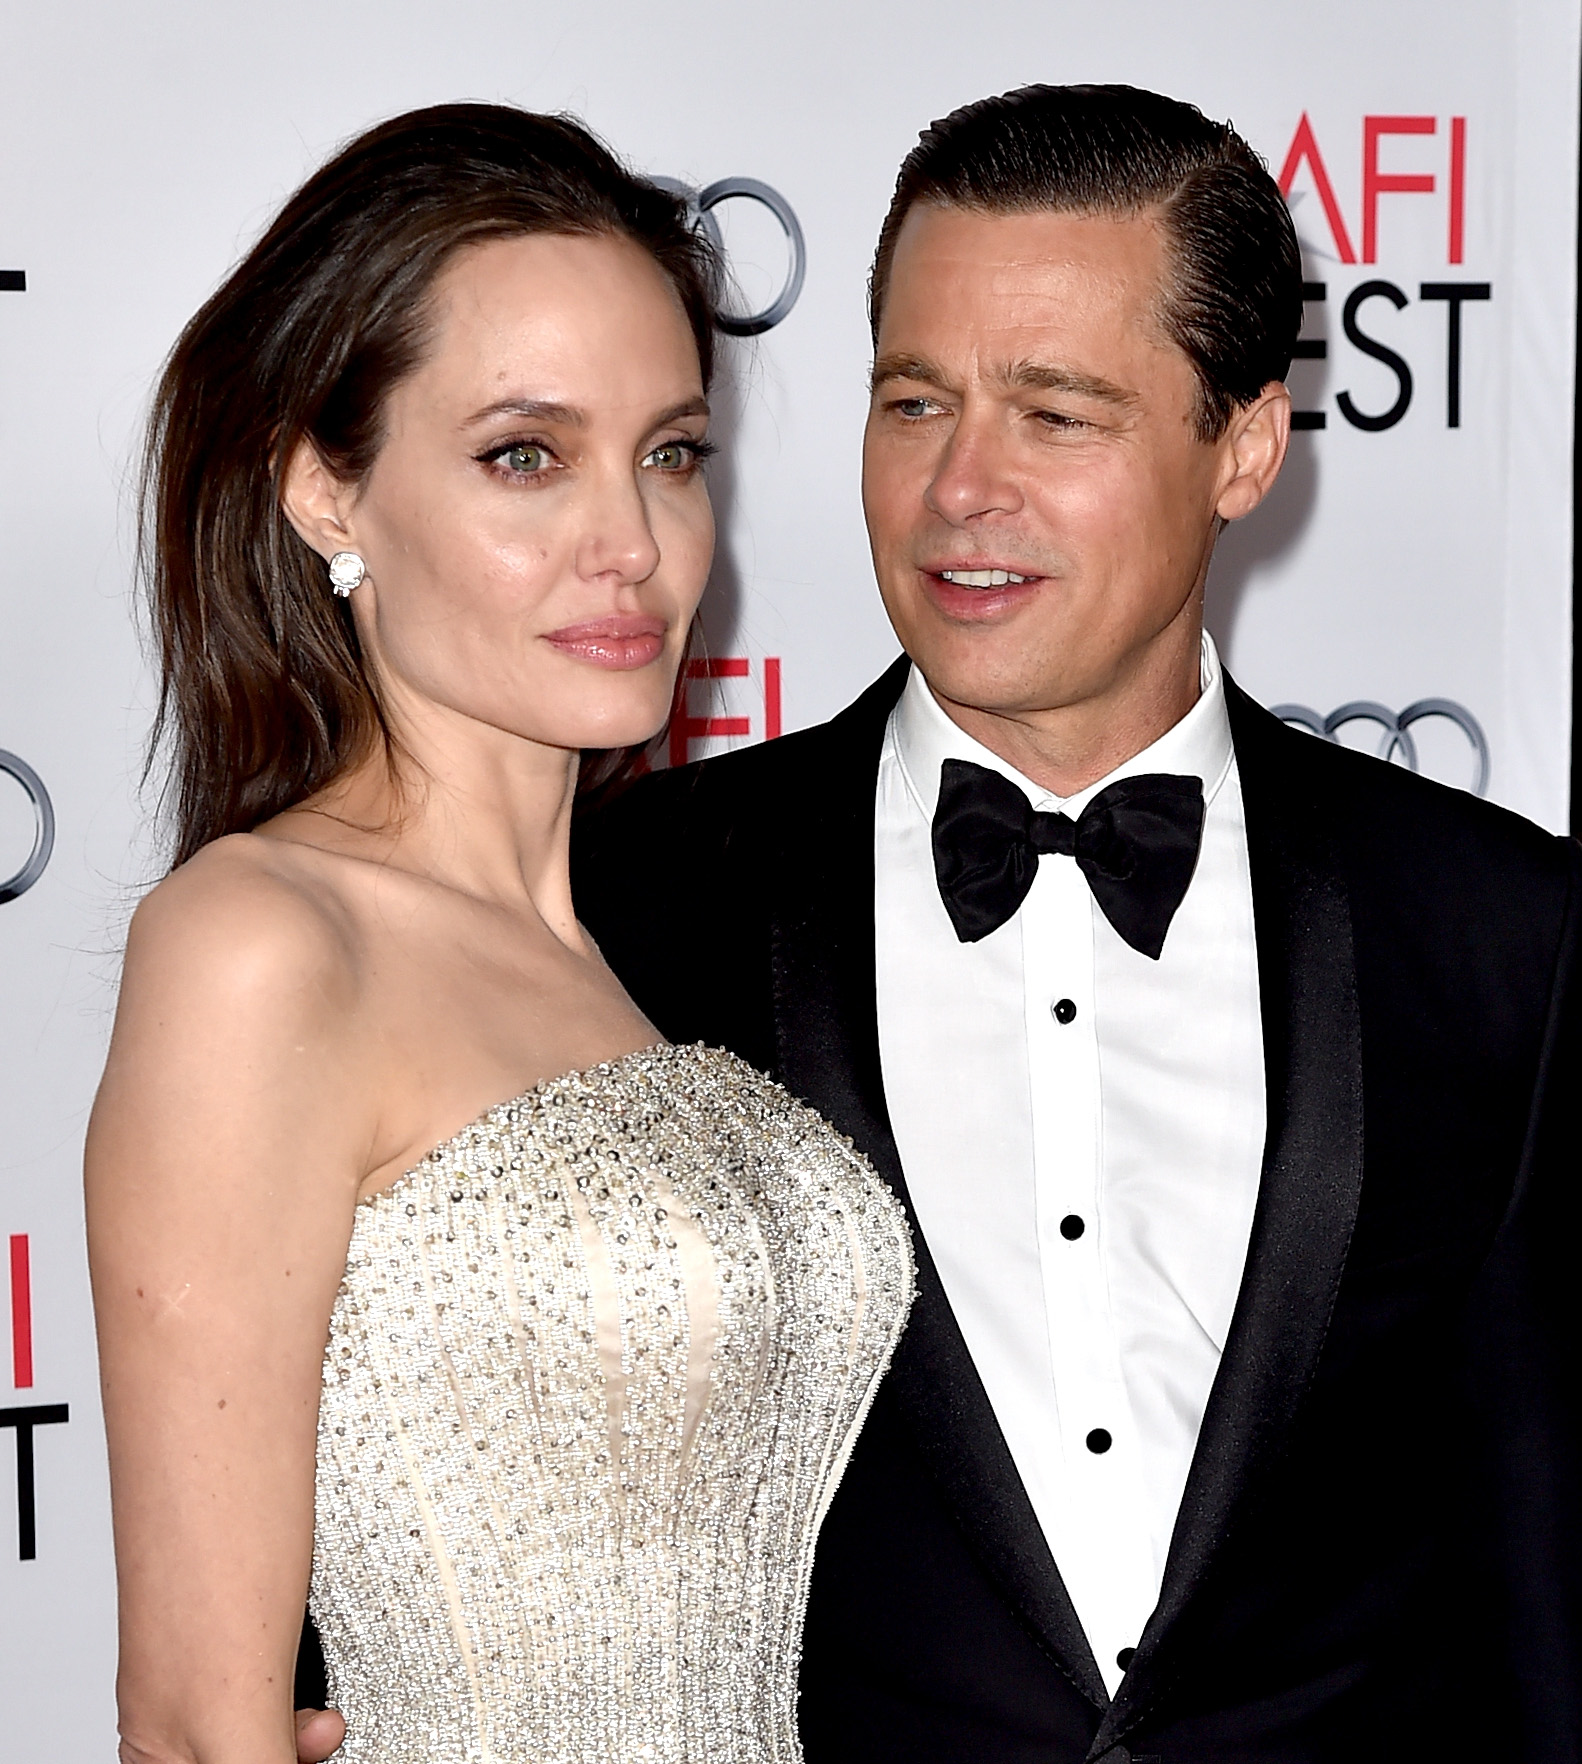 Angelina Jolie Pitt (L) and husband actor Brad Pitt arrive at the AFI FEST 2015 presented by Audi opening night gala premiere of Universal Pictures' 'By The Sea' at the Chinese Theatre on November 5, 2015 in Los Angeles, California. (Photo by Kevin Winter/Getty Images)